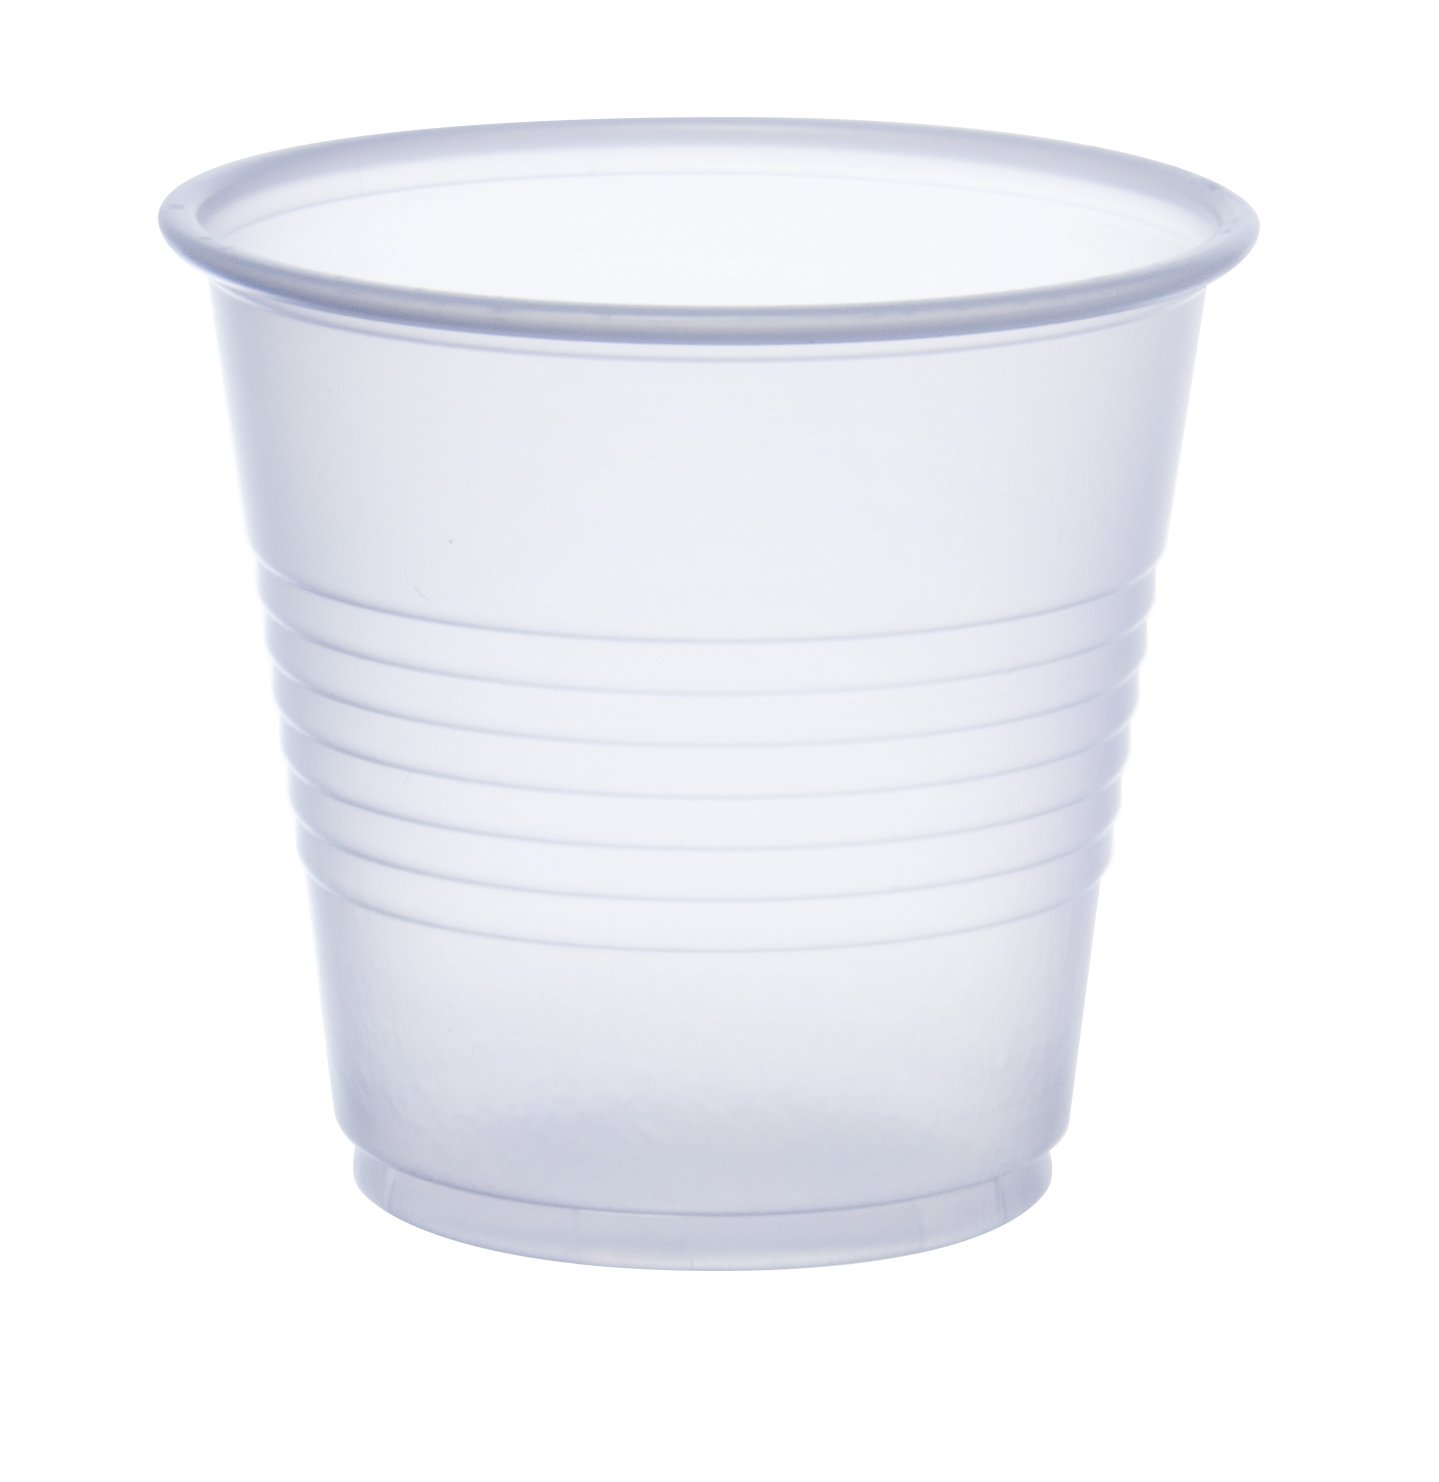 DART Conex Galaxy Polystyrene Plastic Cold Cups 3.5oz 100 Sleeve 25 Sleeves/Carton